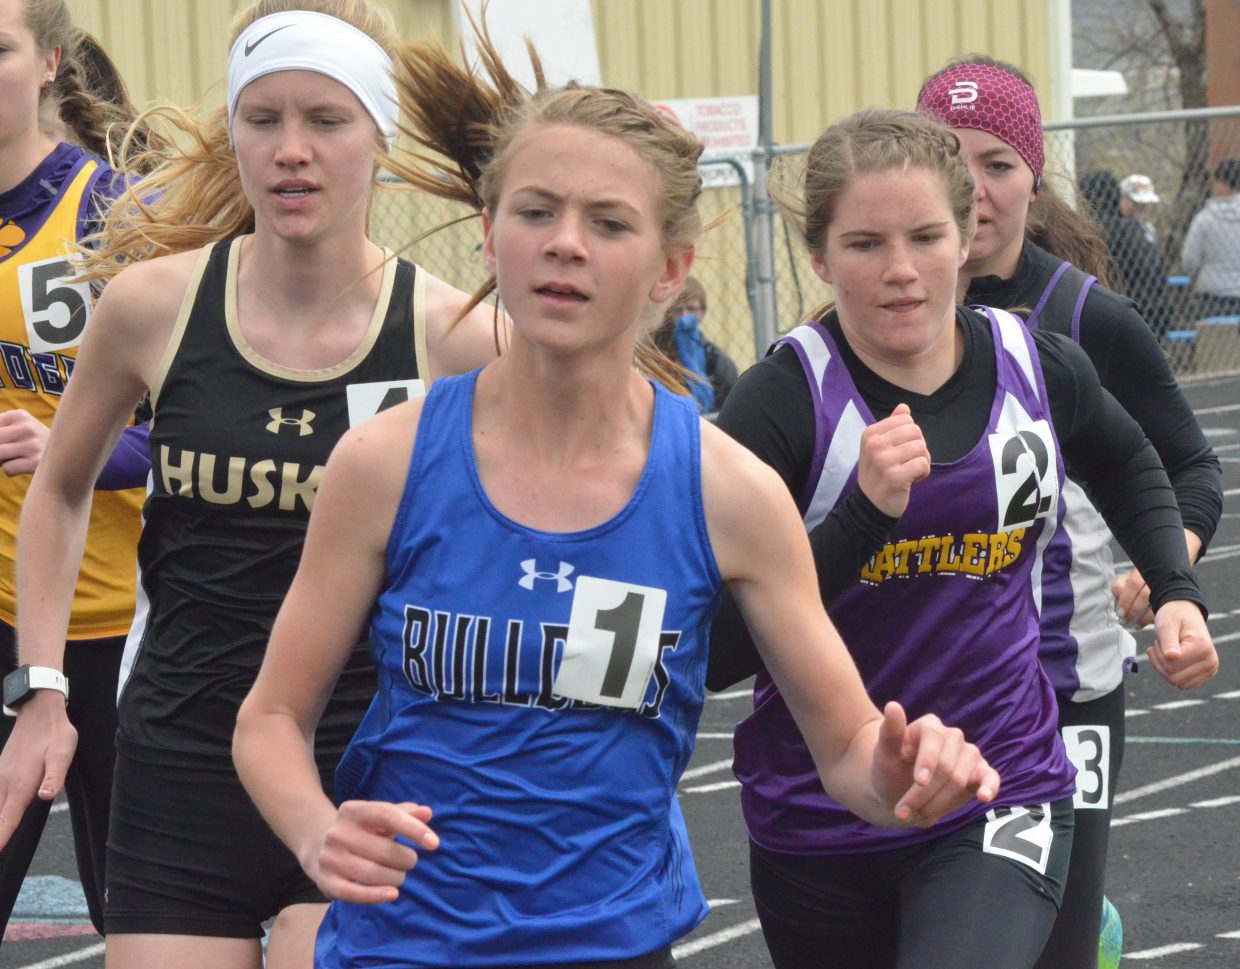 Moffat County High School's Liberty Hippely leads the pack during the girls 1,600-meter run at Friday's Clint Wells Invitational in Craig.